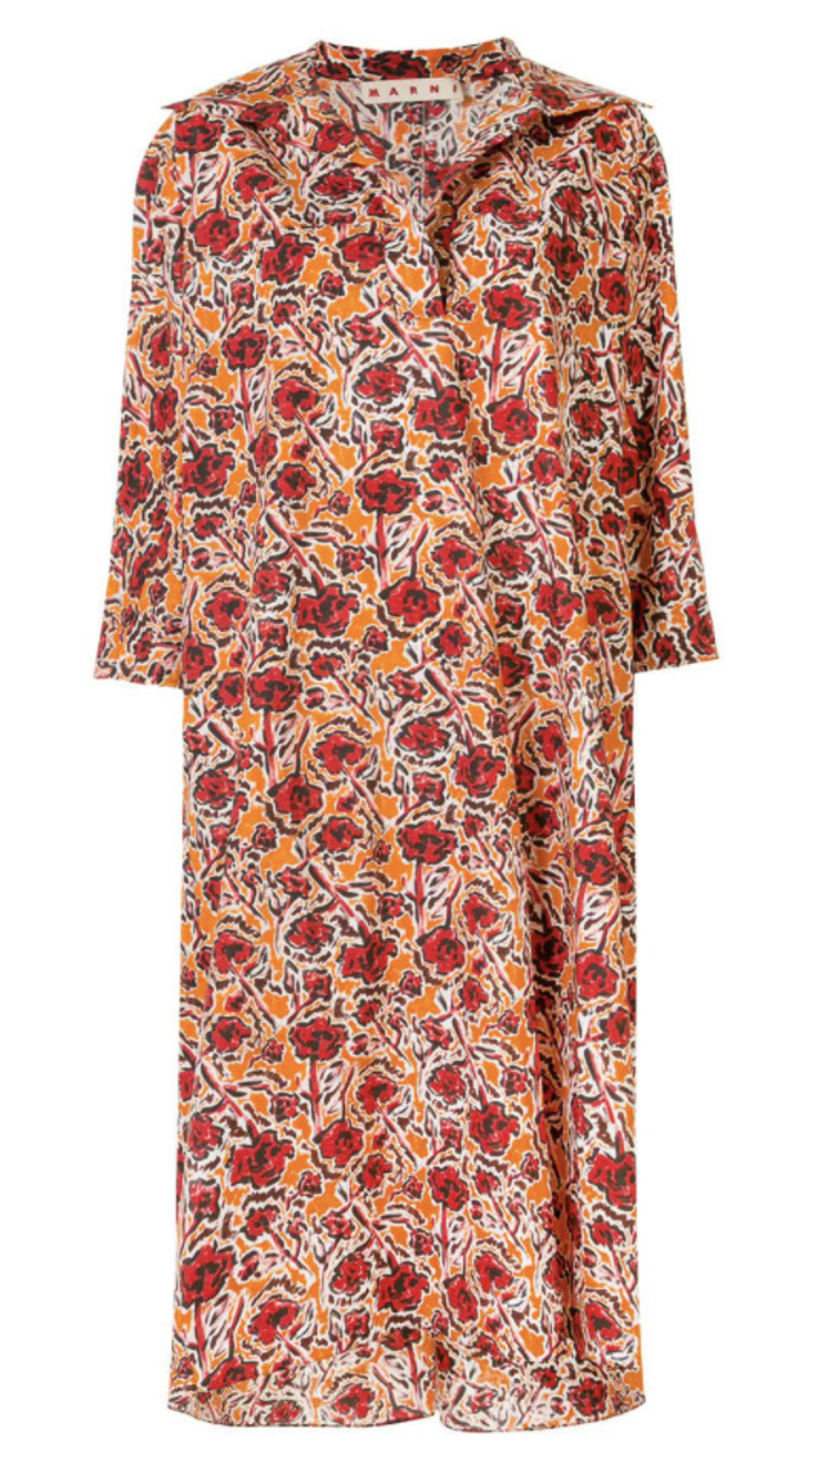 Marni COLLARED PRINTED TUNIC DRESS Dresses Sale